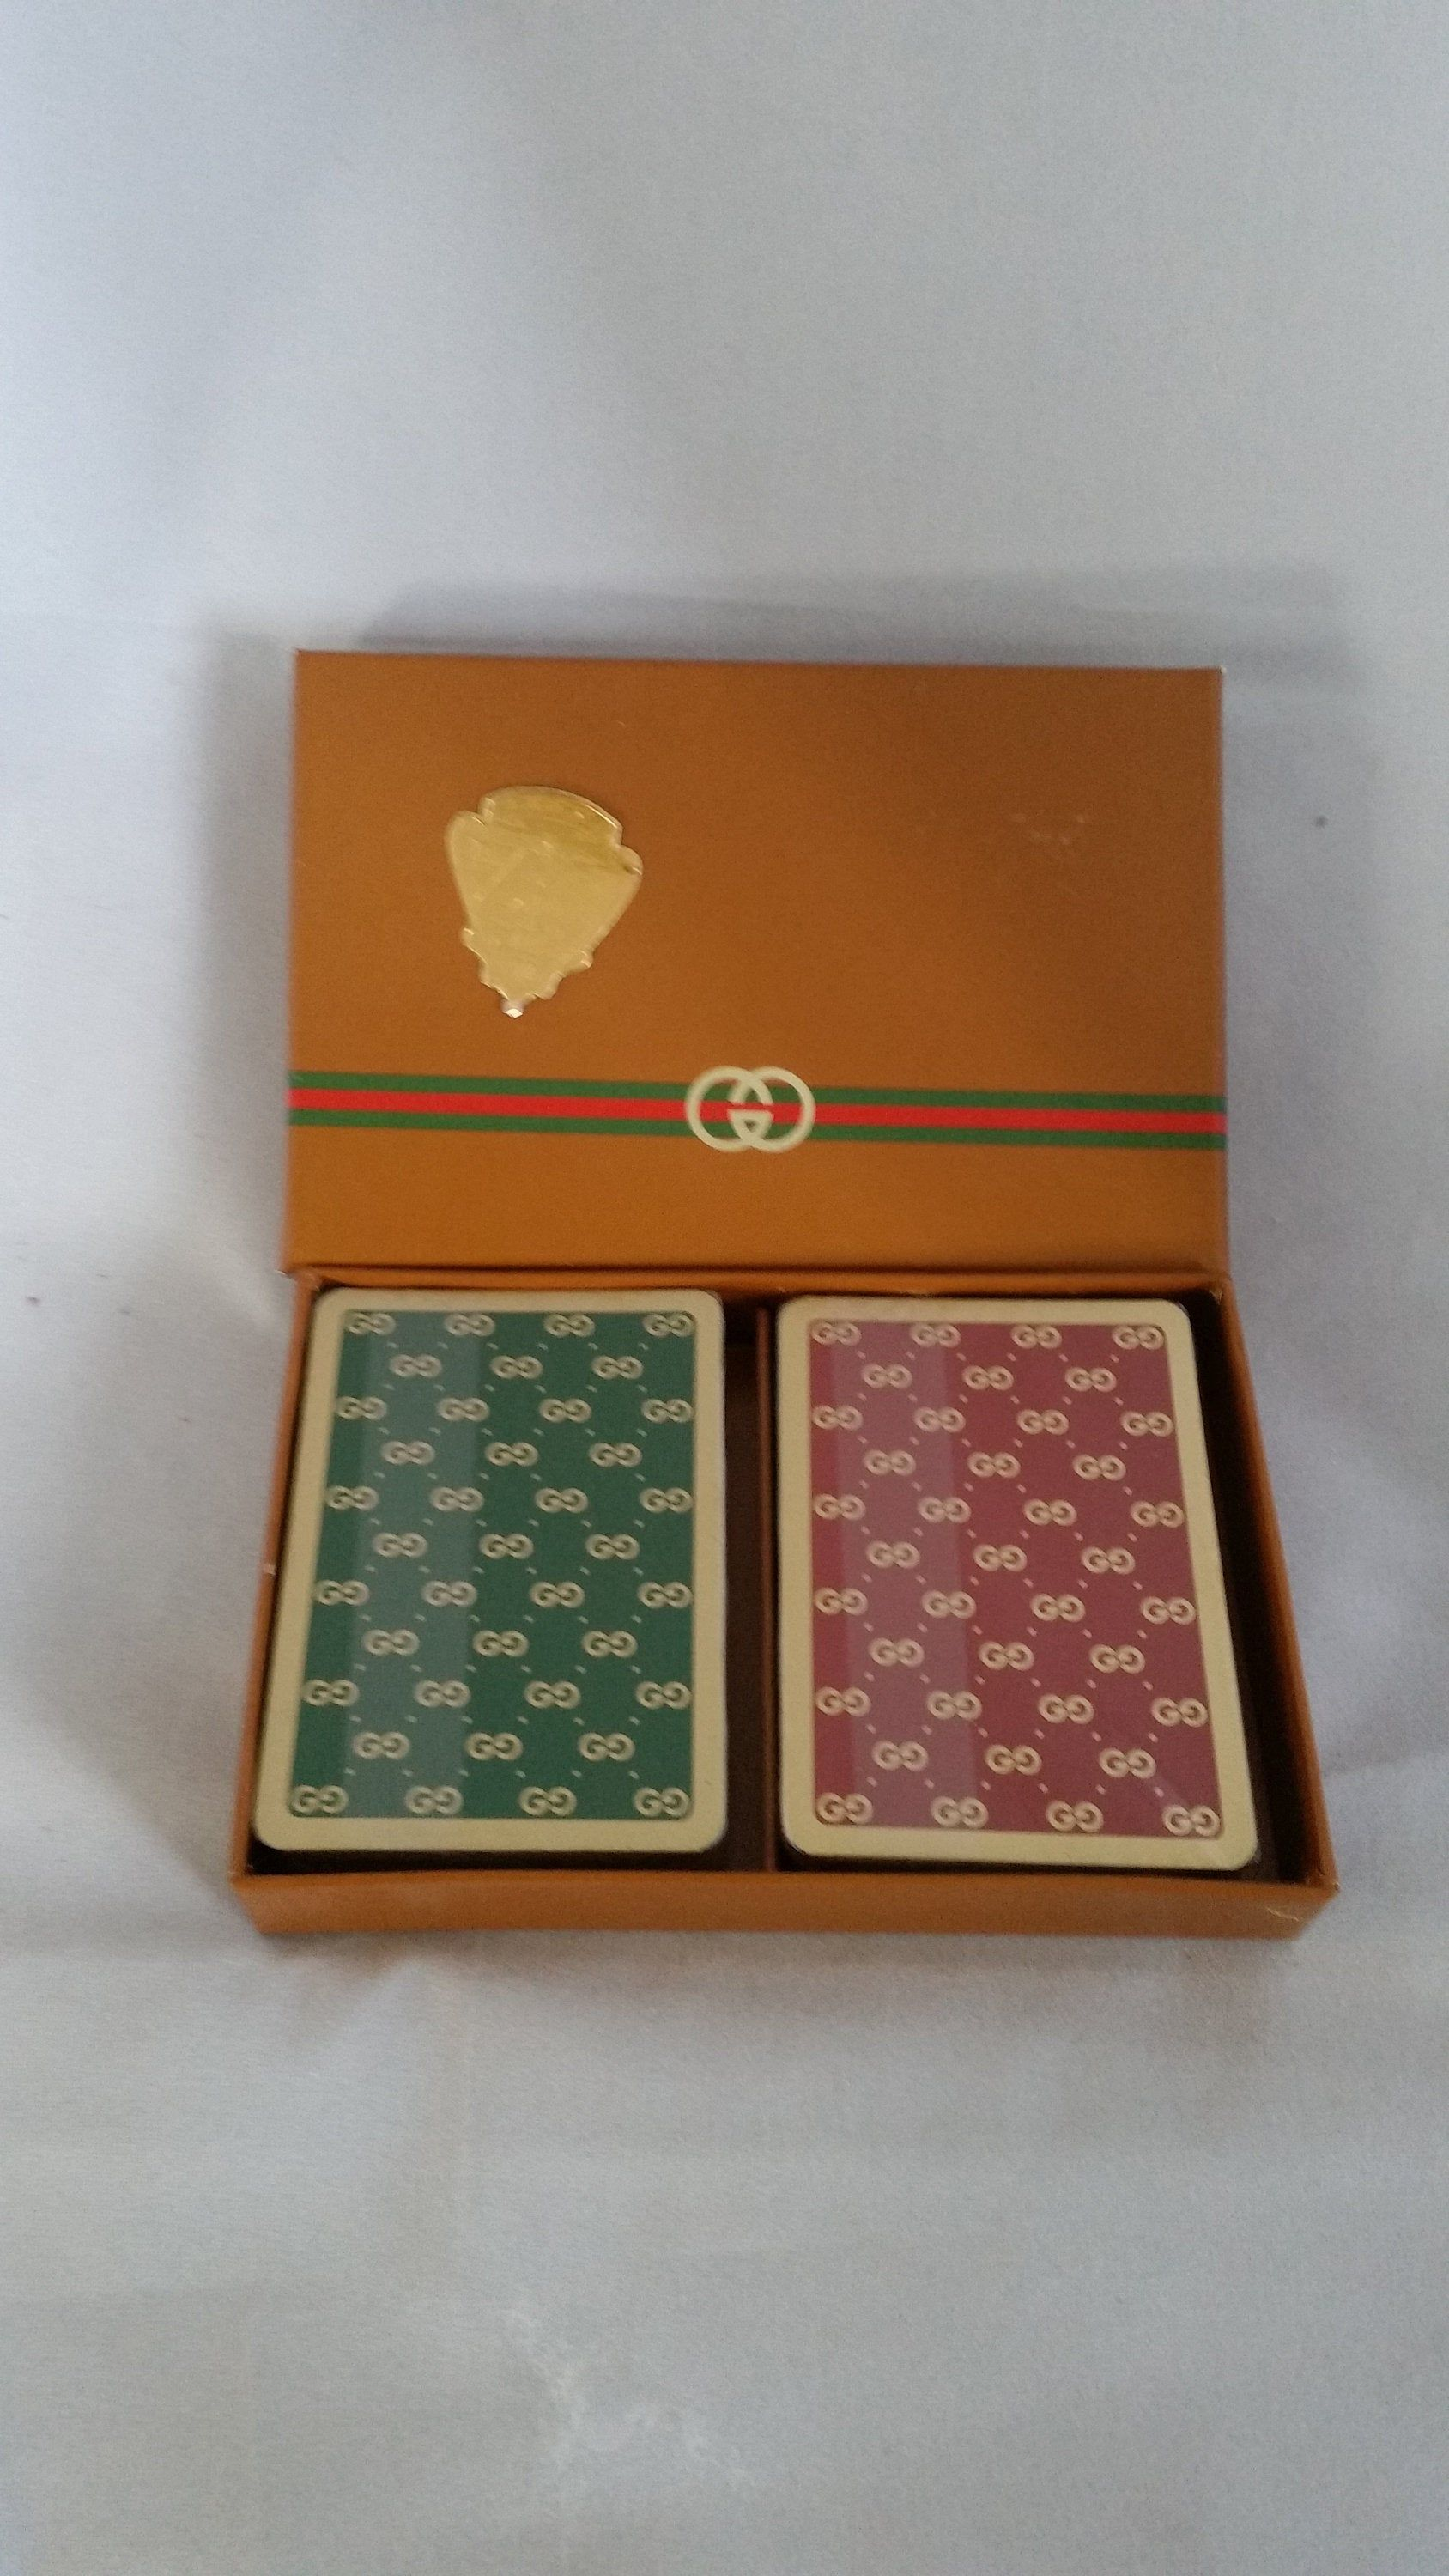 Gucci playing cards etsy deck of cards vintage